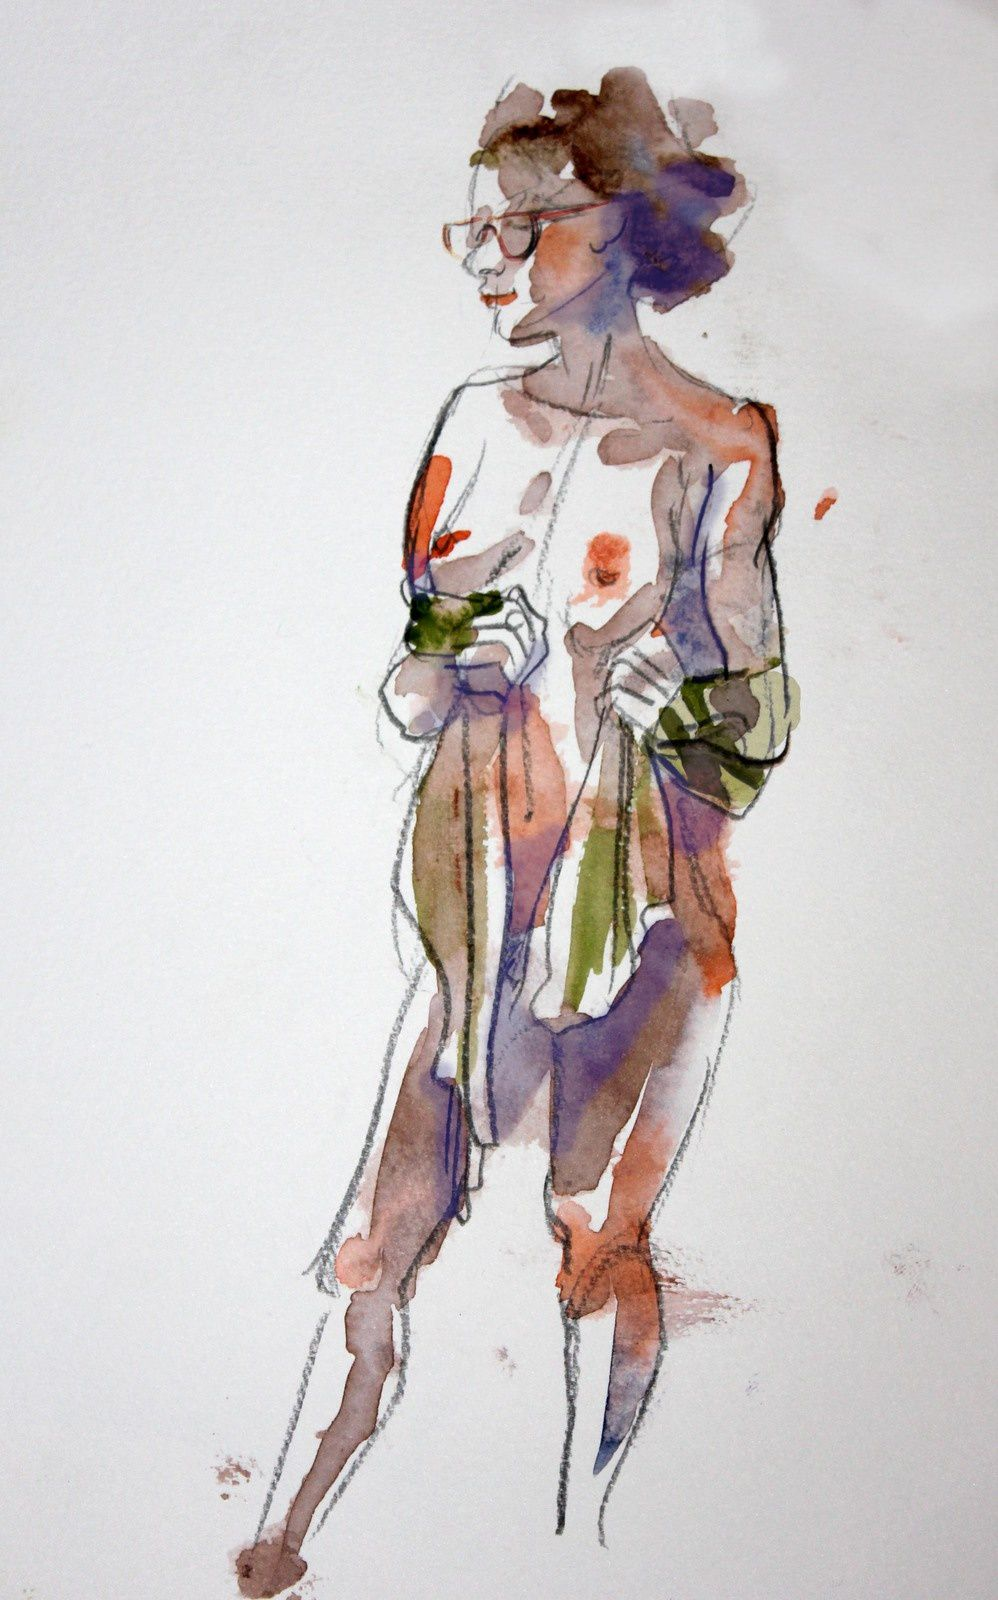 Modèle Vivant : pose de 7 minutes à l'encre aquarelle / Life-drawing : required time of 7 minutes, with brillant watercolour